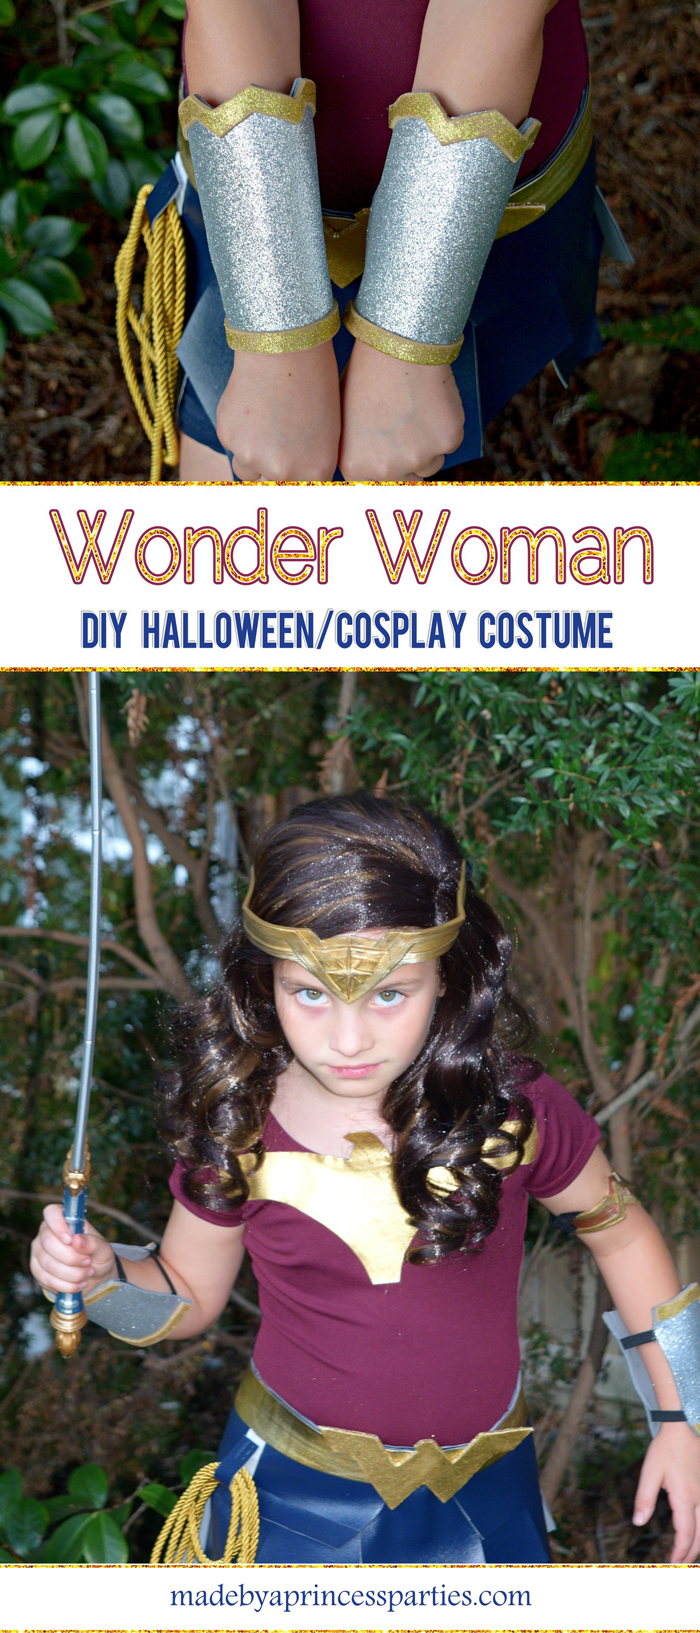 Wonder Woman Movie Costume for Halloween or Cosplay Pin Now Read Later MadebyaPrincess #halloweencostume #wonderwoman #galgadot #wonderwomancostume